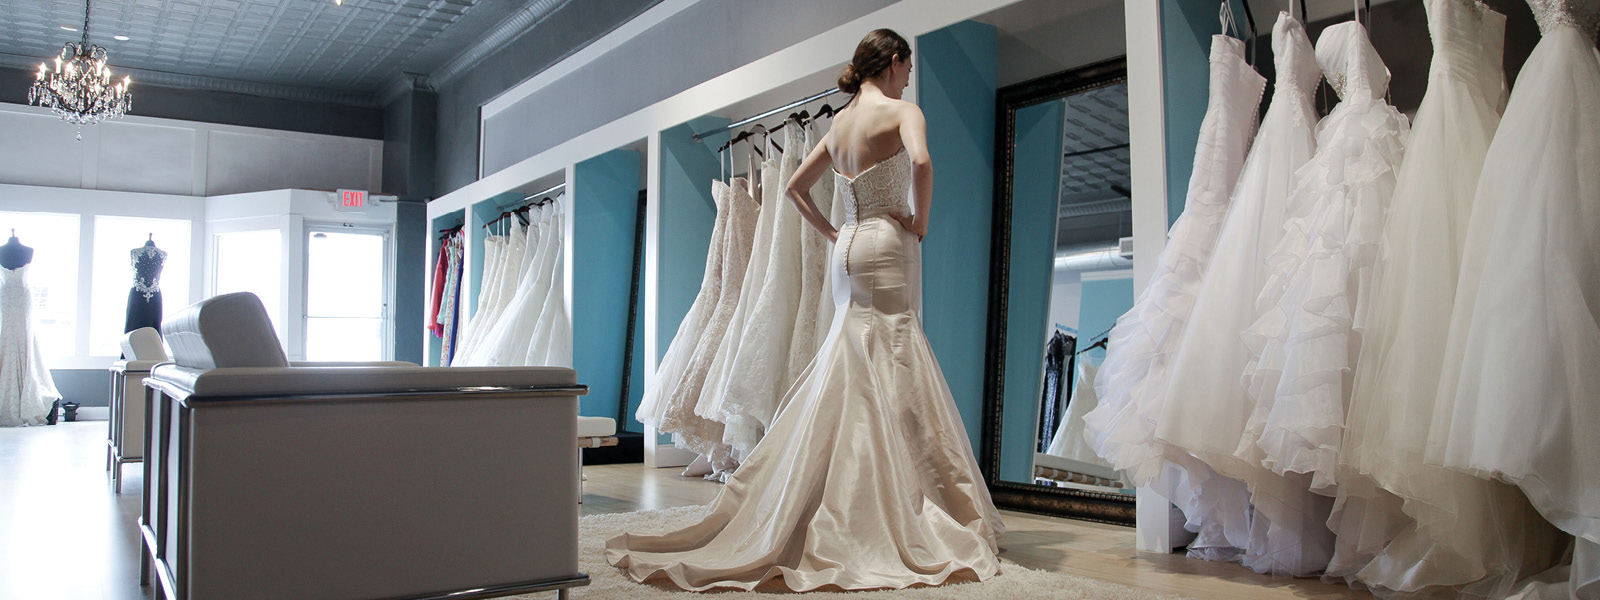 Bridal boutique san angelo wedding dress bridal shop for Best stores for dresses for weddings